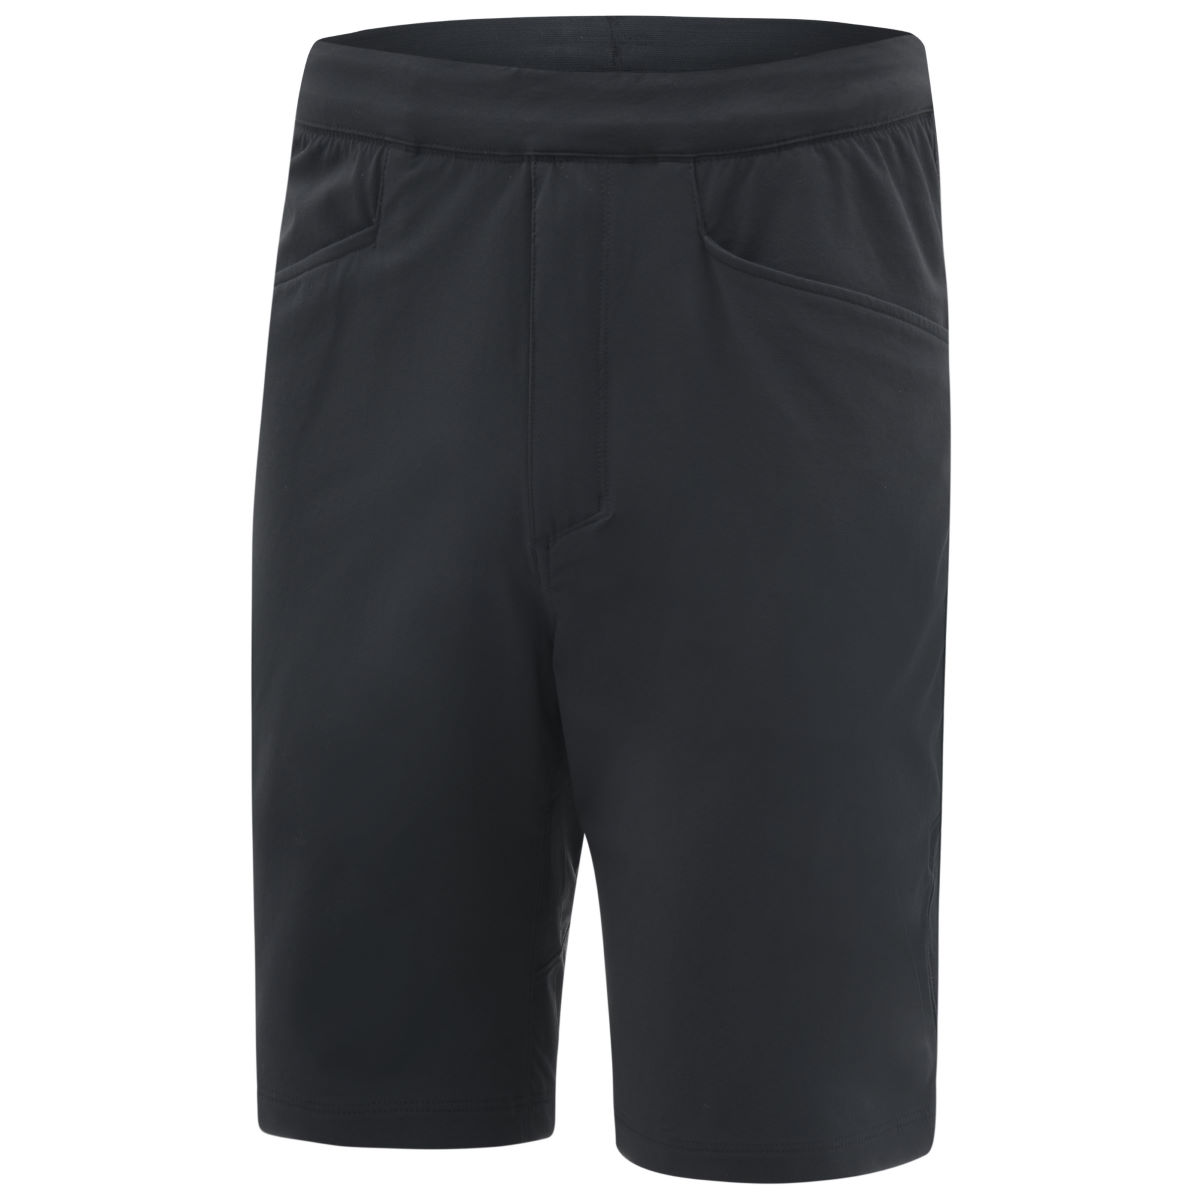 Mountain Hardwear Mountain Hardwear Chockstone™ Pull On Short   Shorts